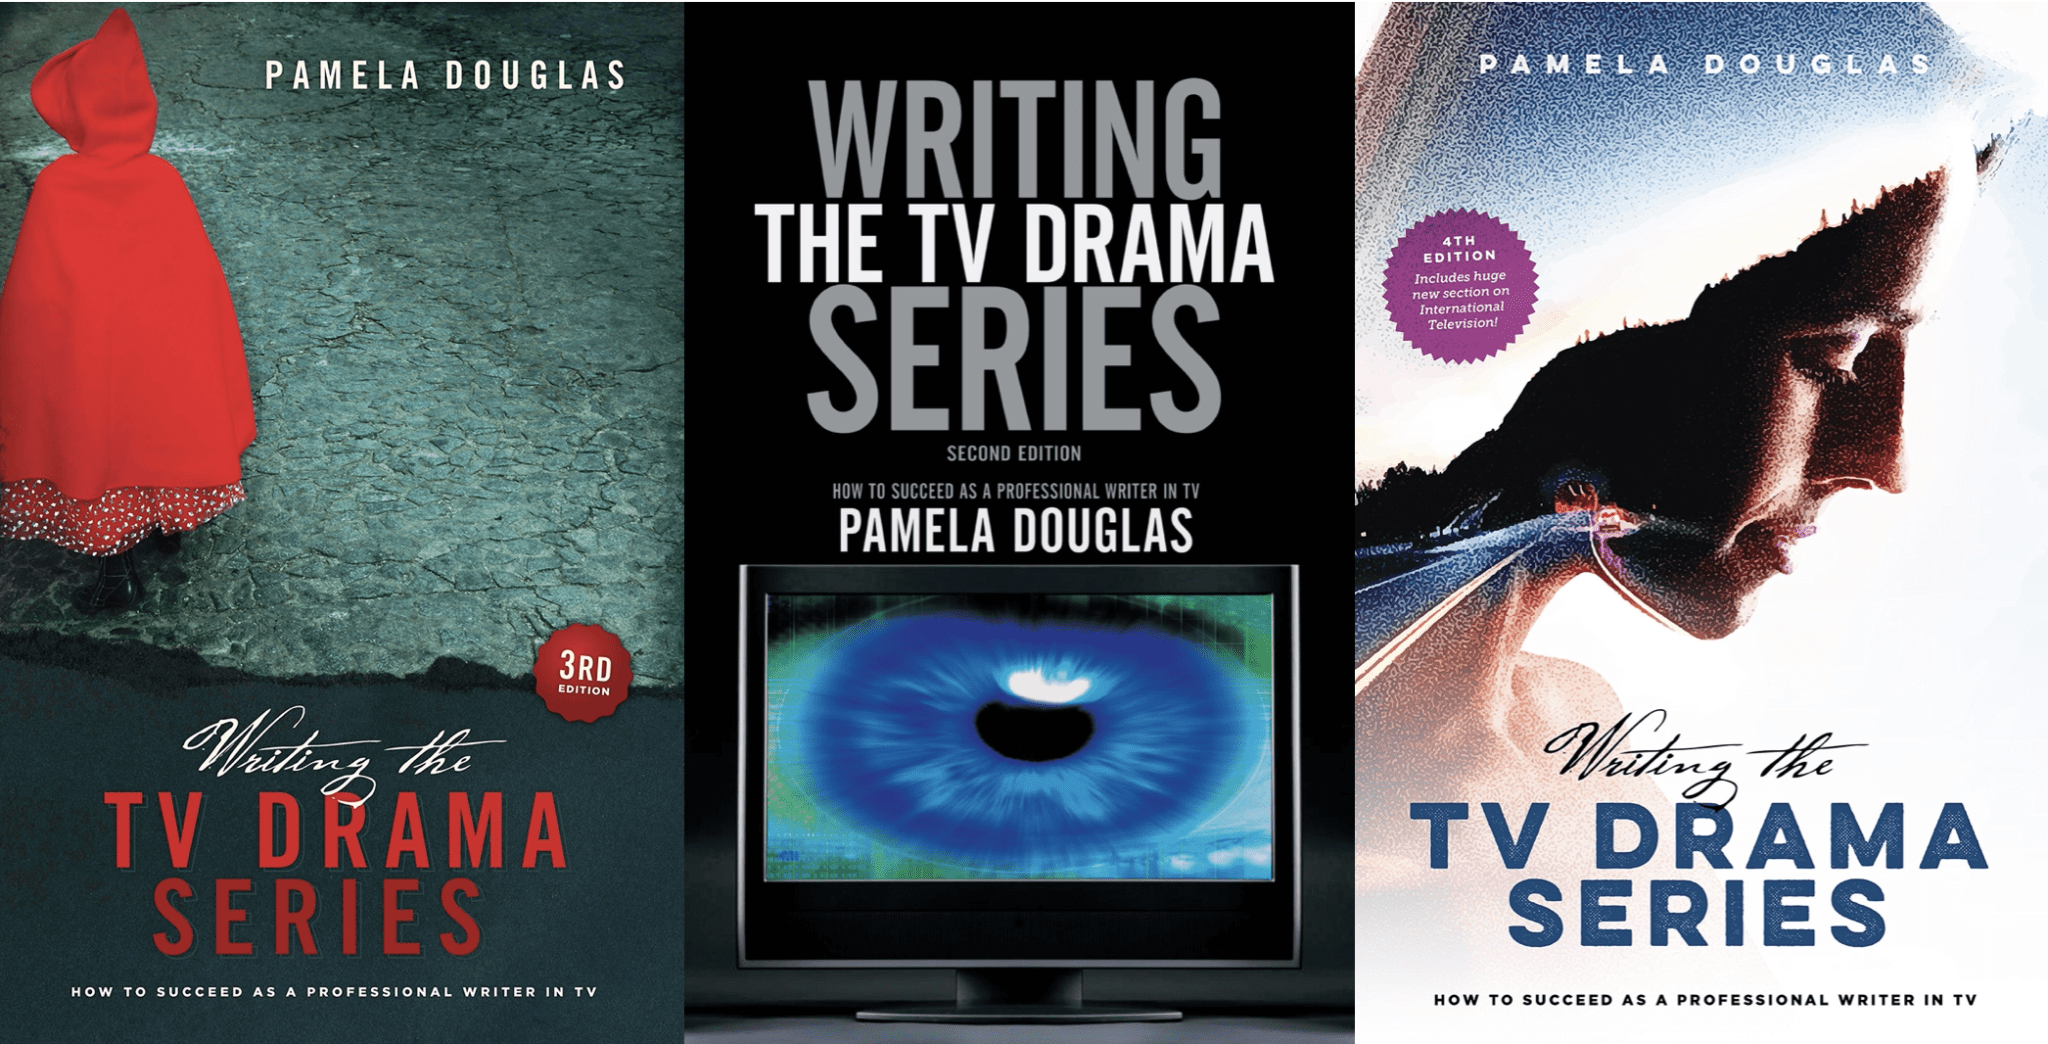 Writing the TV Drama Series - thescriptblog.com